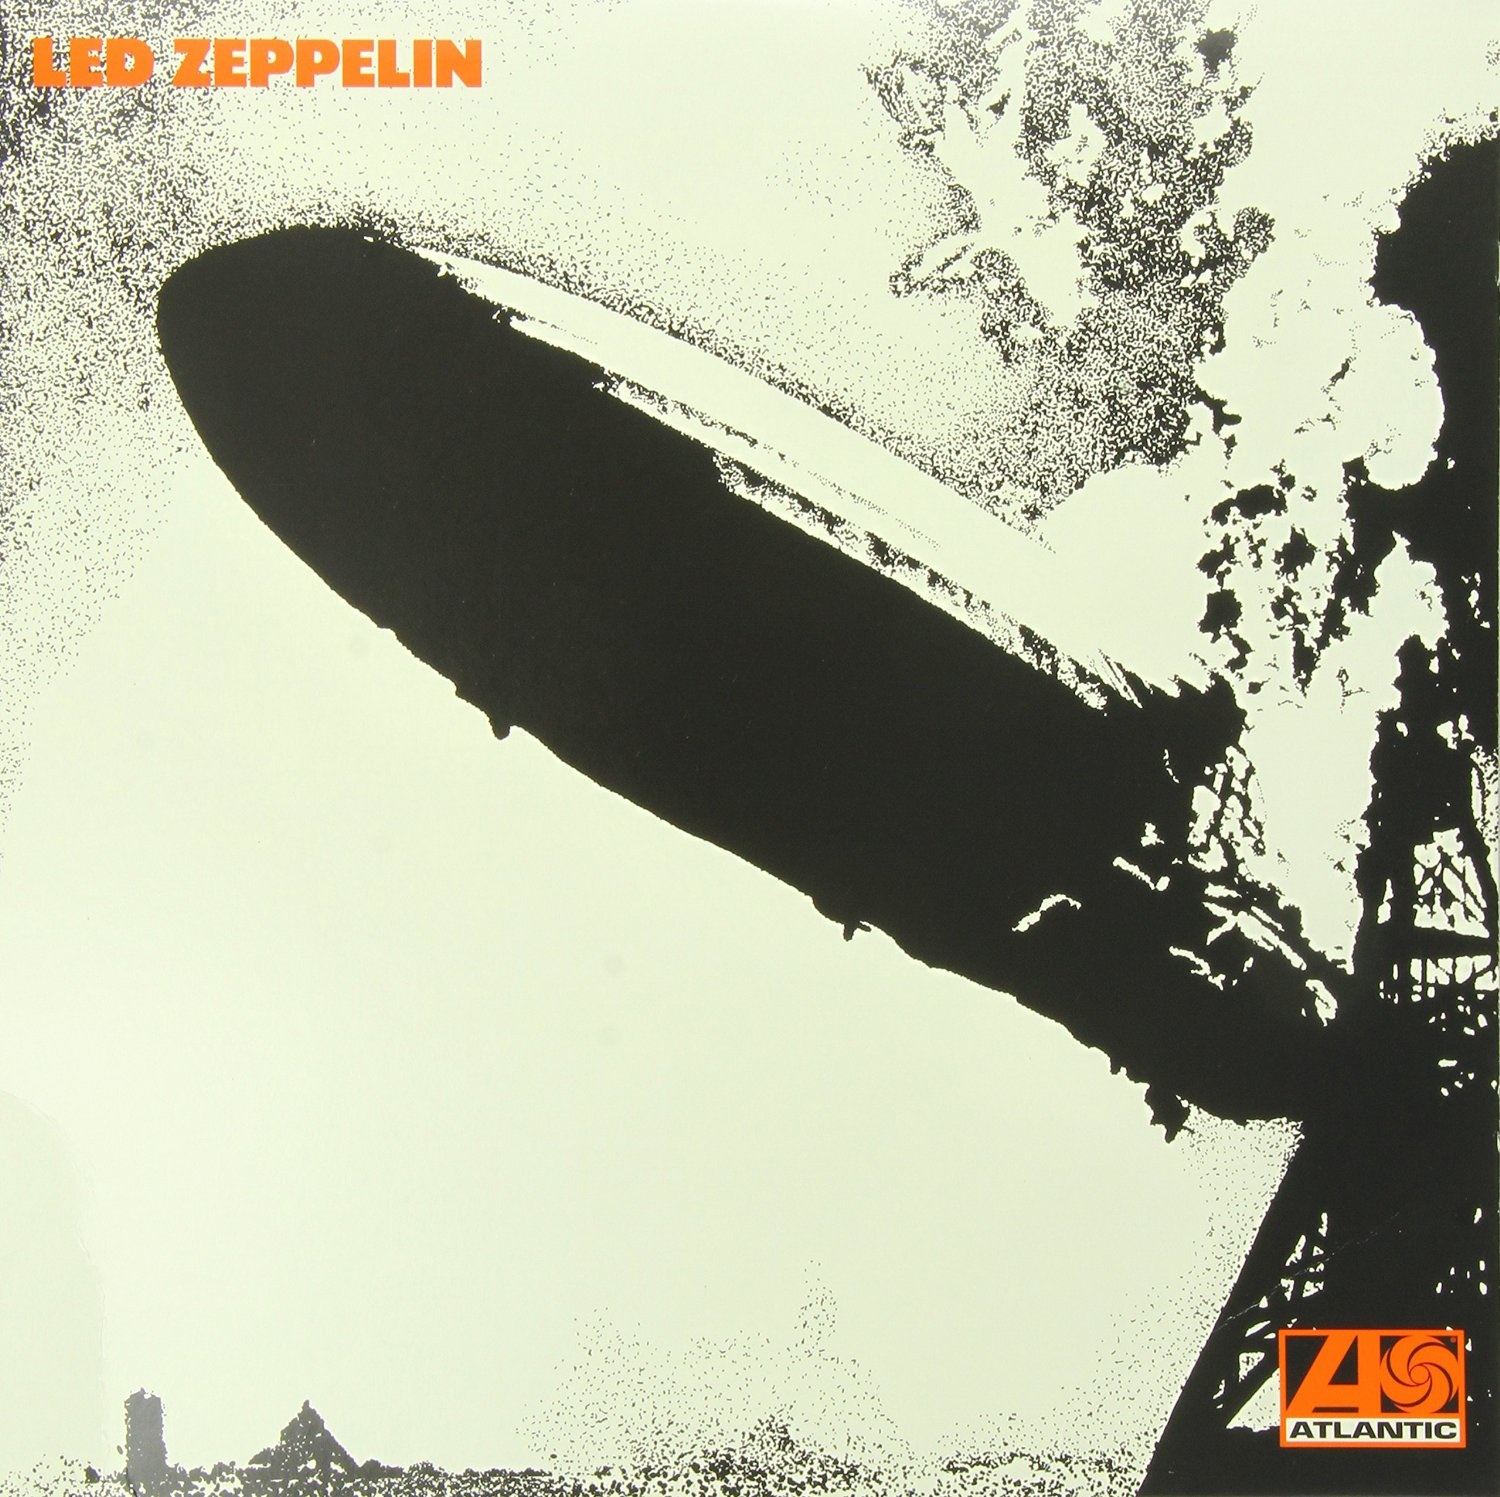 Led Zeppelin - Led Zeppelin I. Remastered Original (LP) cd led zeppelin lll remastered